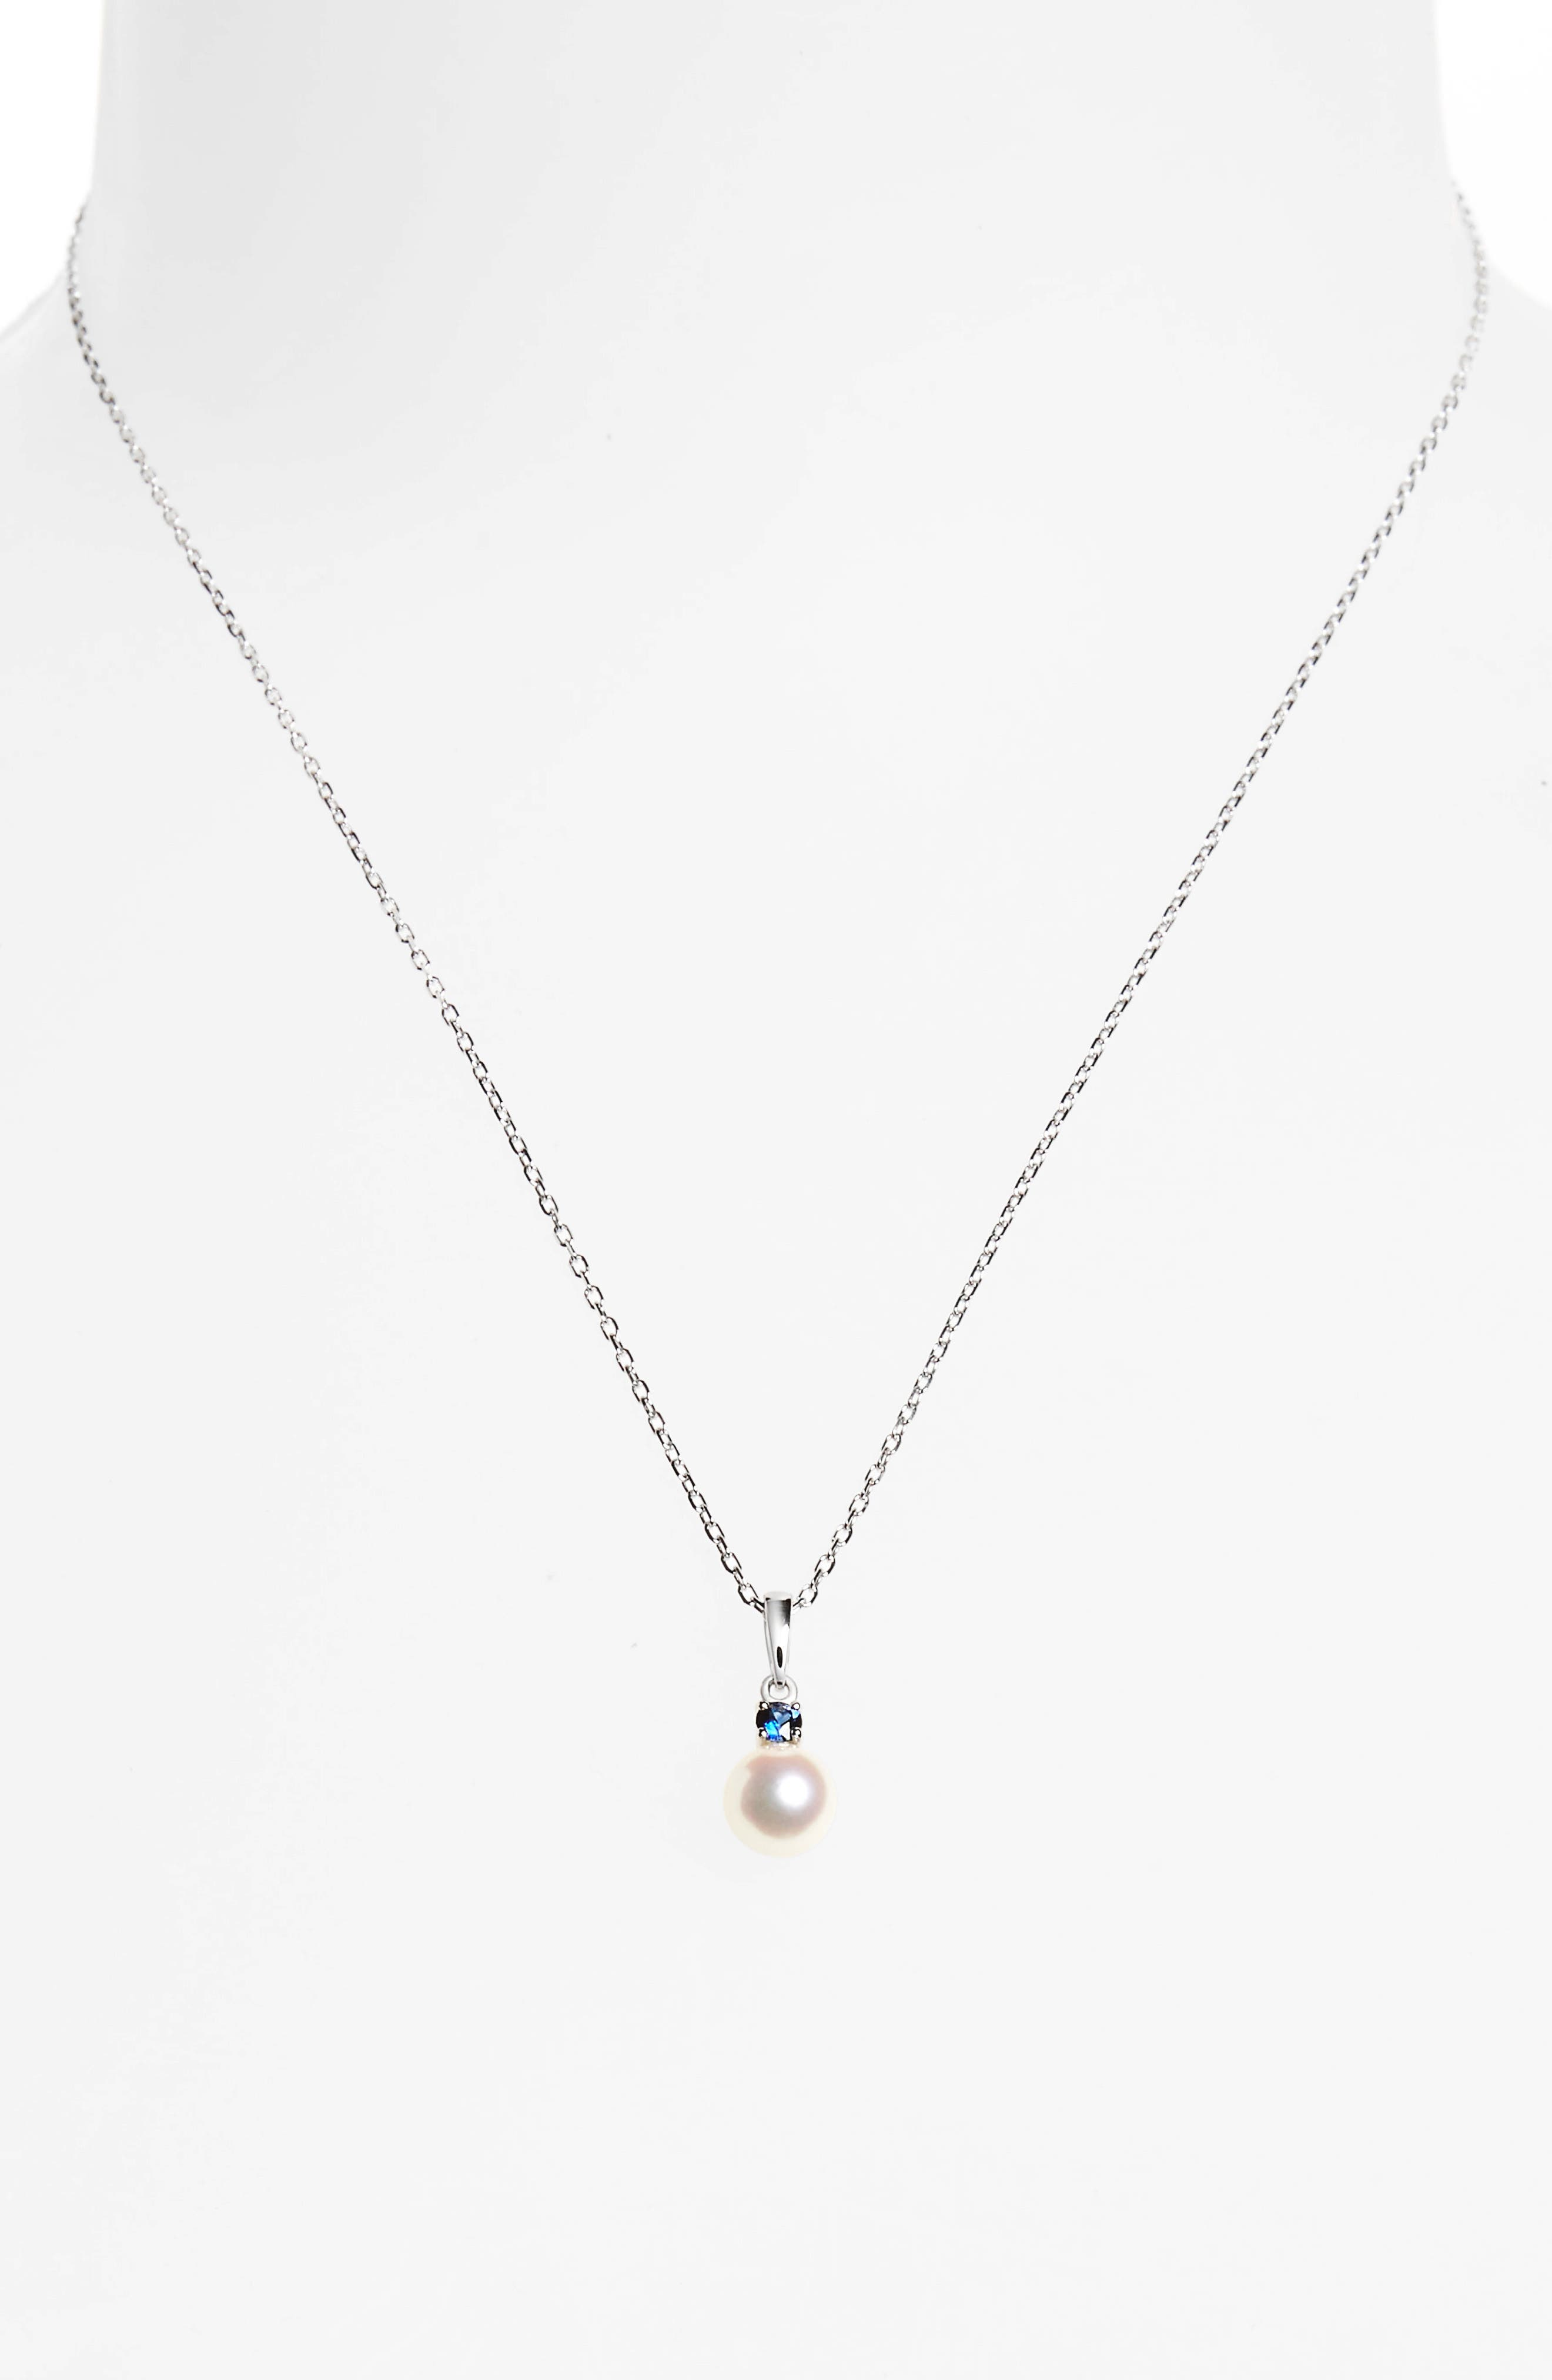 Akoya Cultured Pearl & Sapphire Pendant Necklace,                             Alternate thumbnail 2, color,